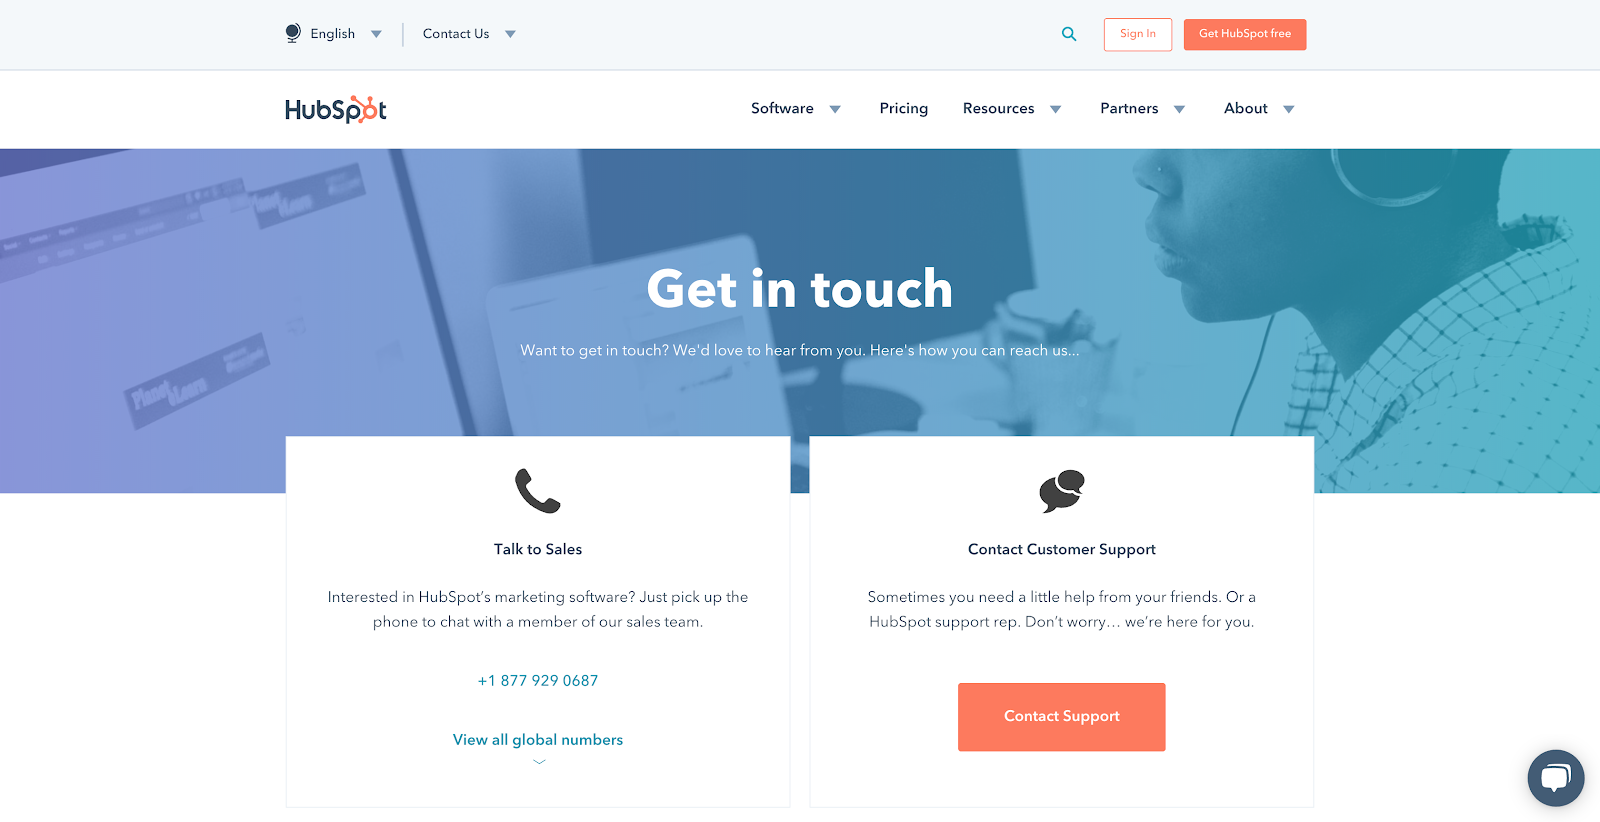 25 best contact us page examples to inspire yours Personal Links Page hubspot contact us